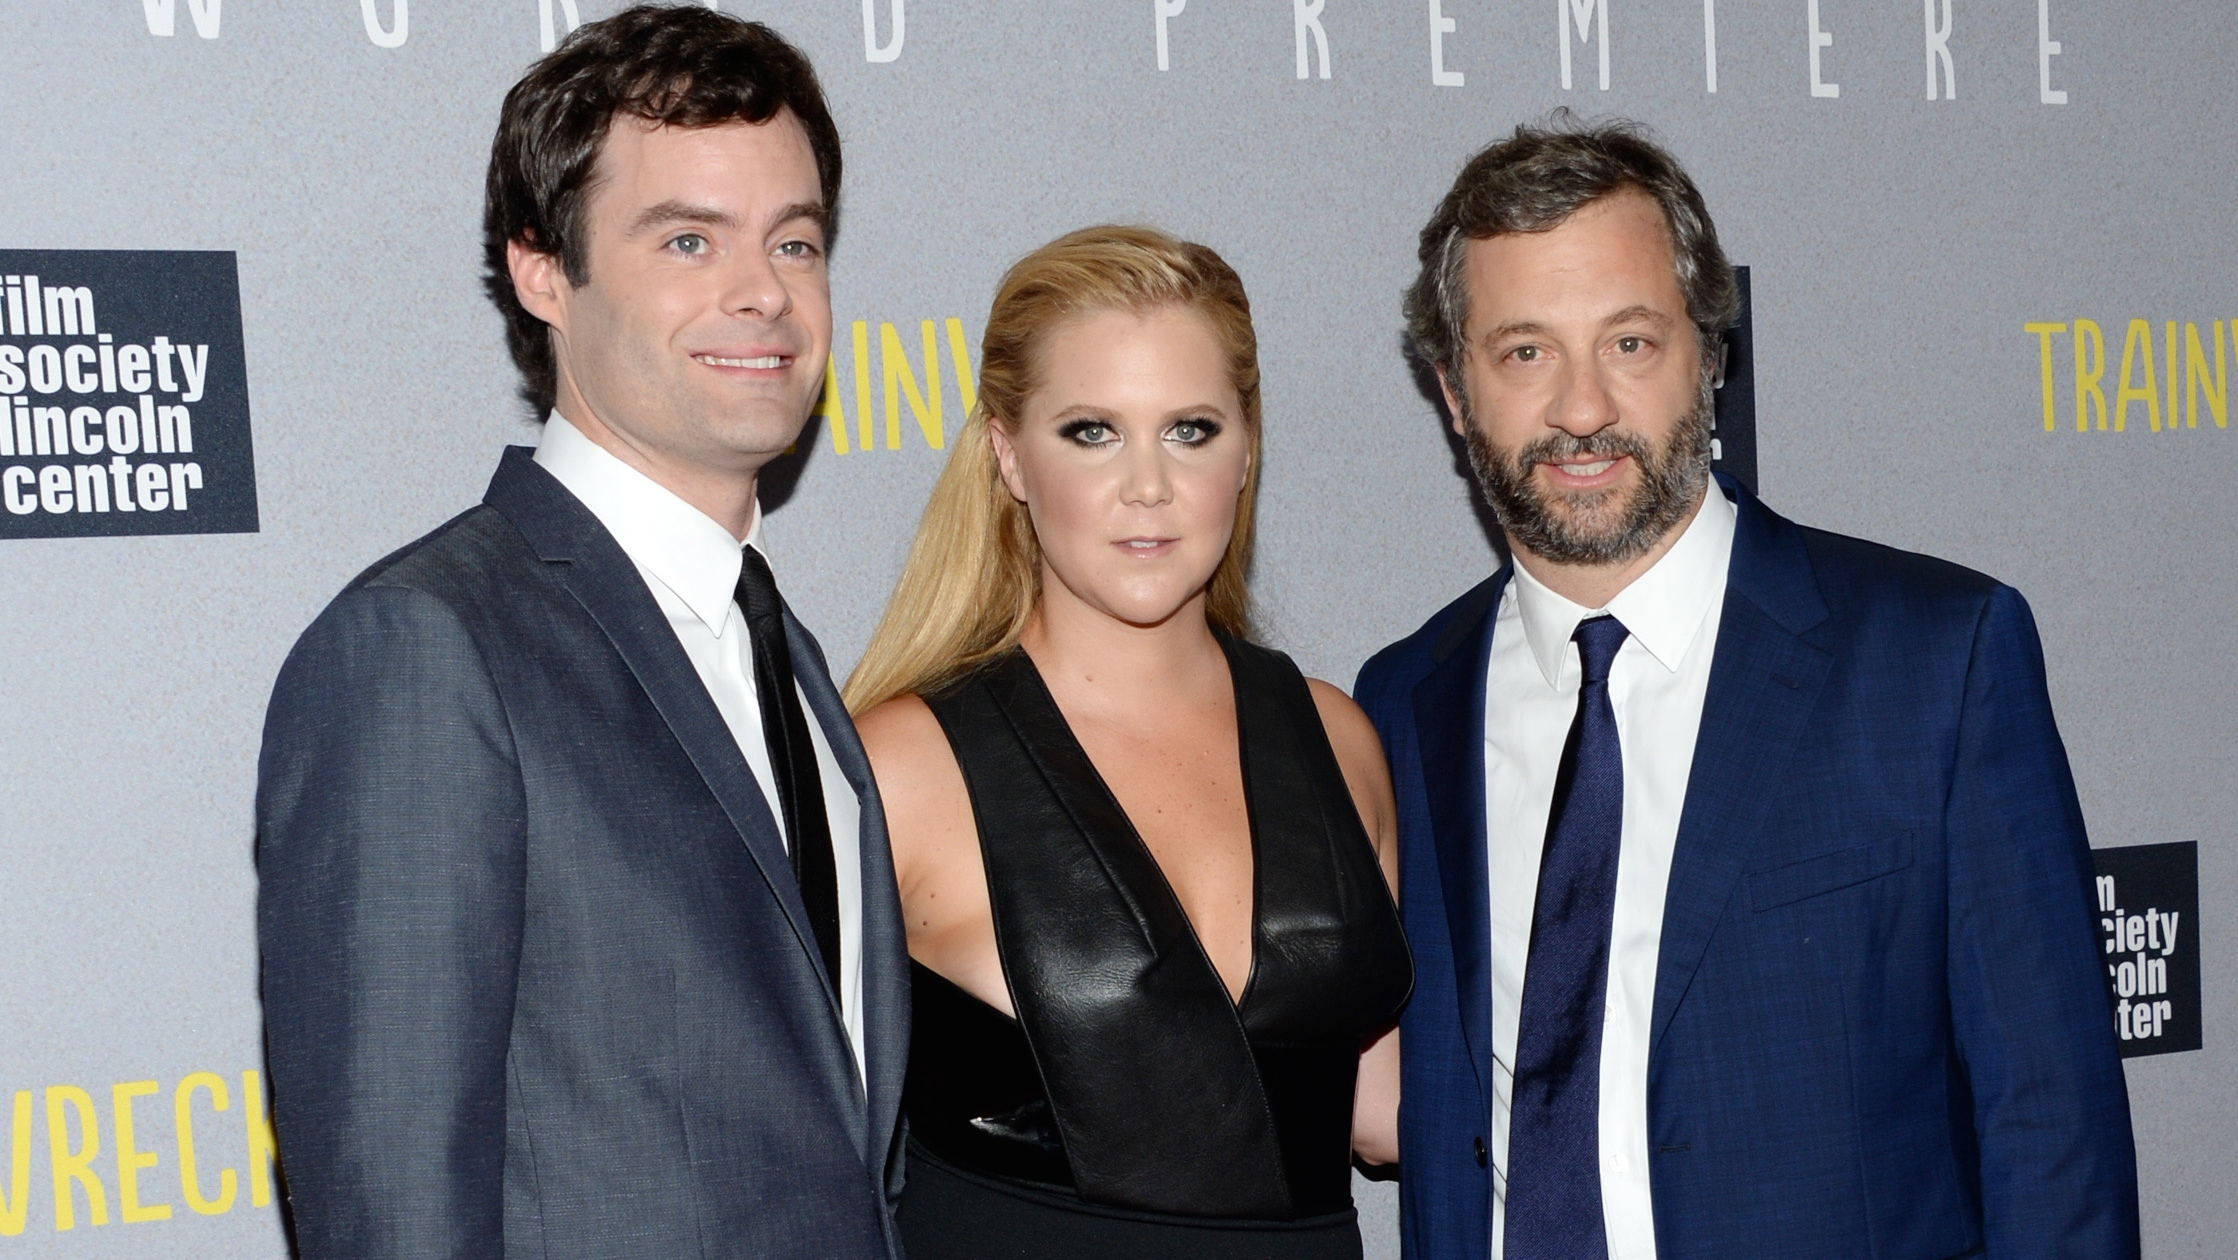 Bill Hader, Amy Schumer and Judd Apatow at the 'Trainwreck' world premiere - H 2015